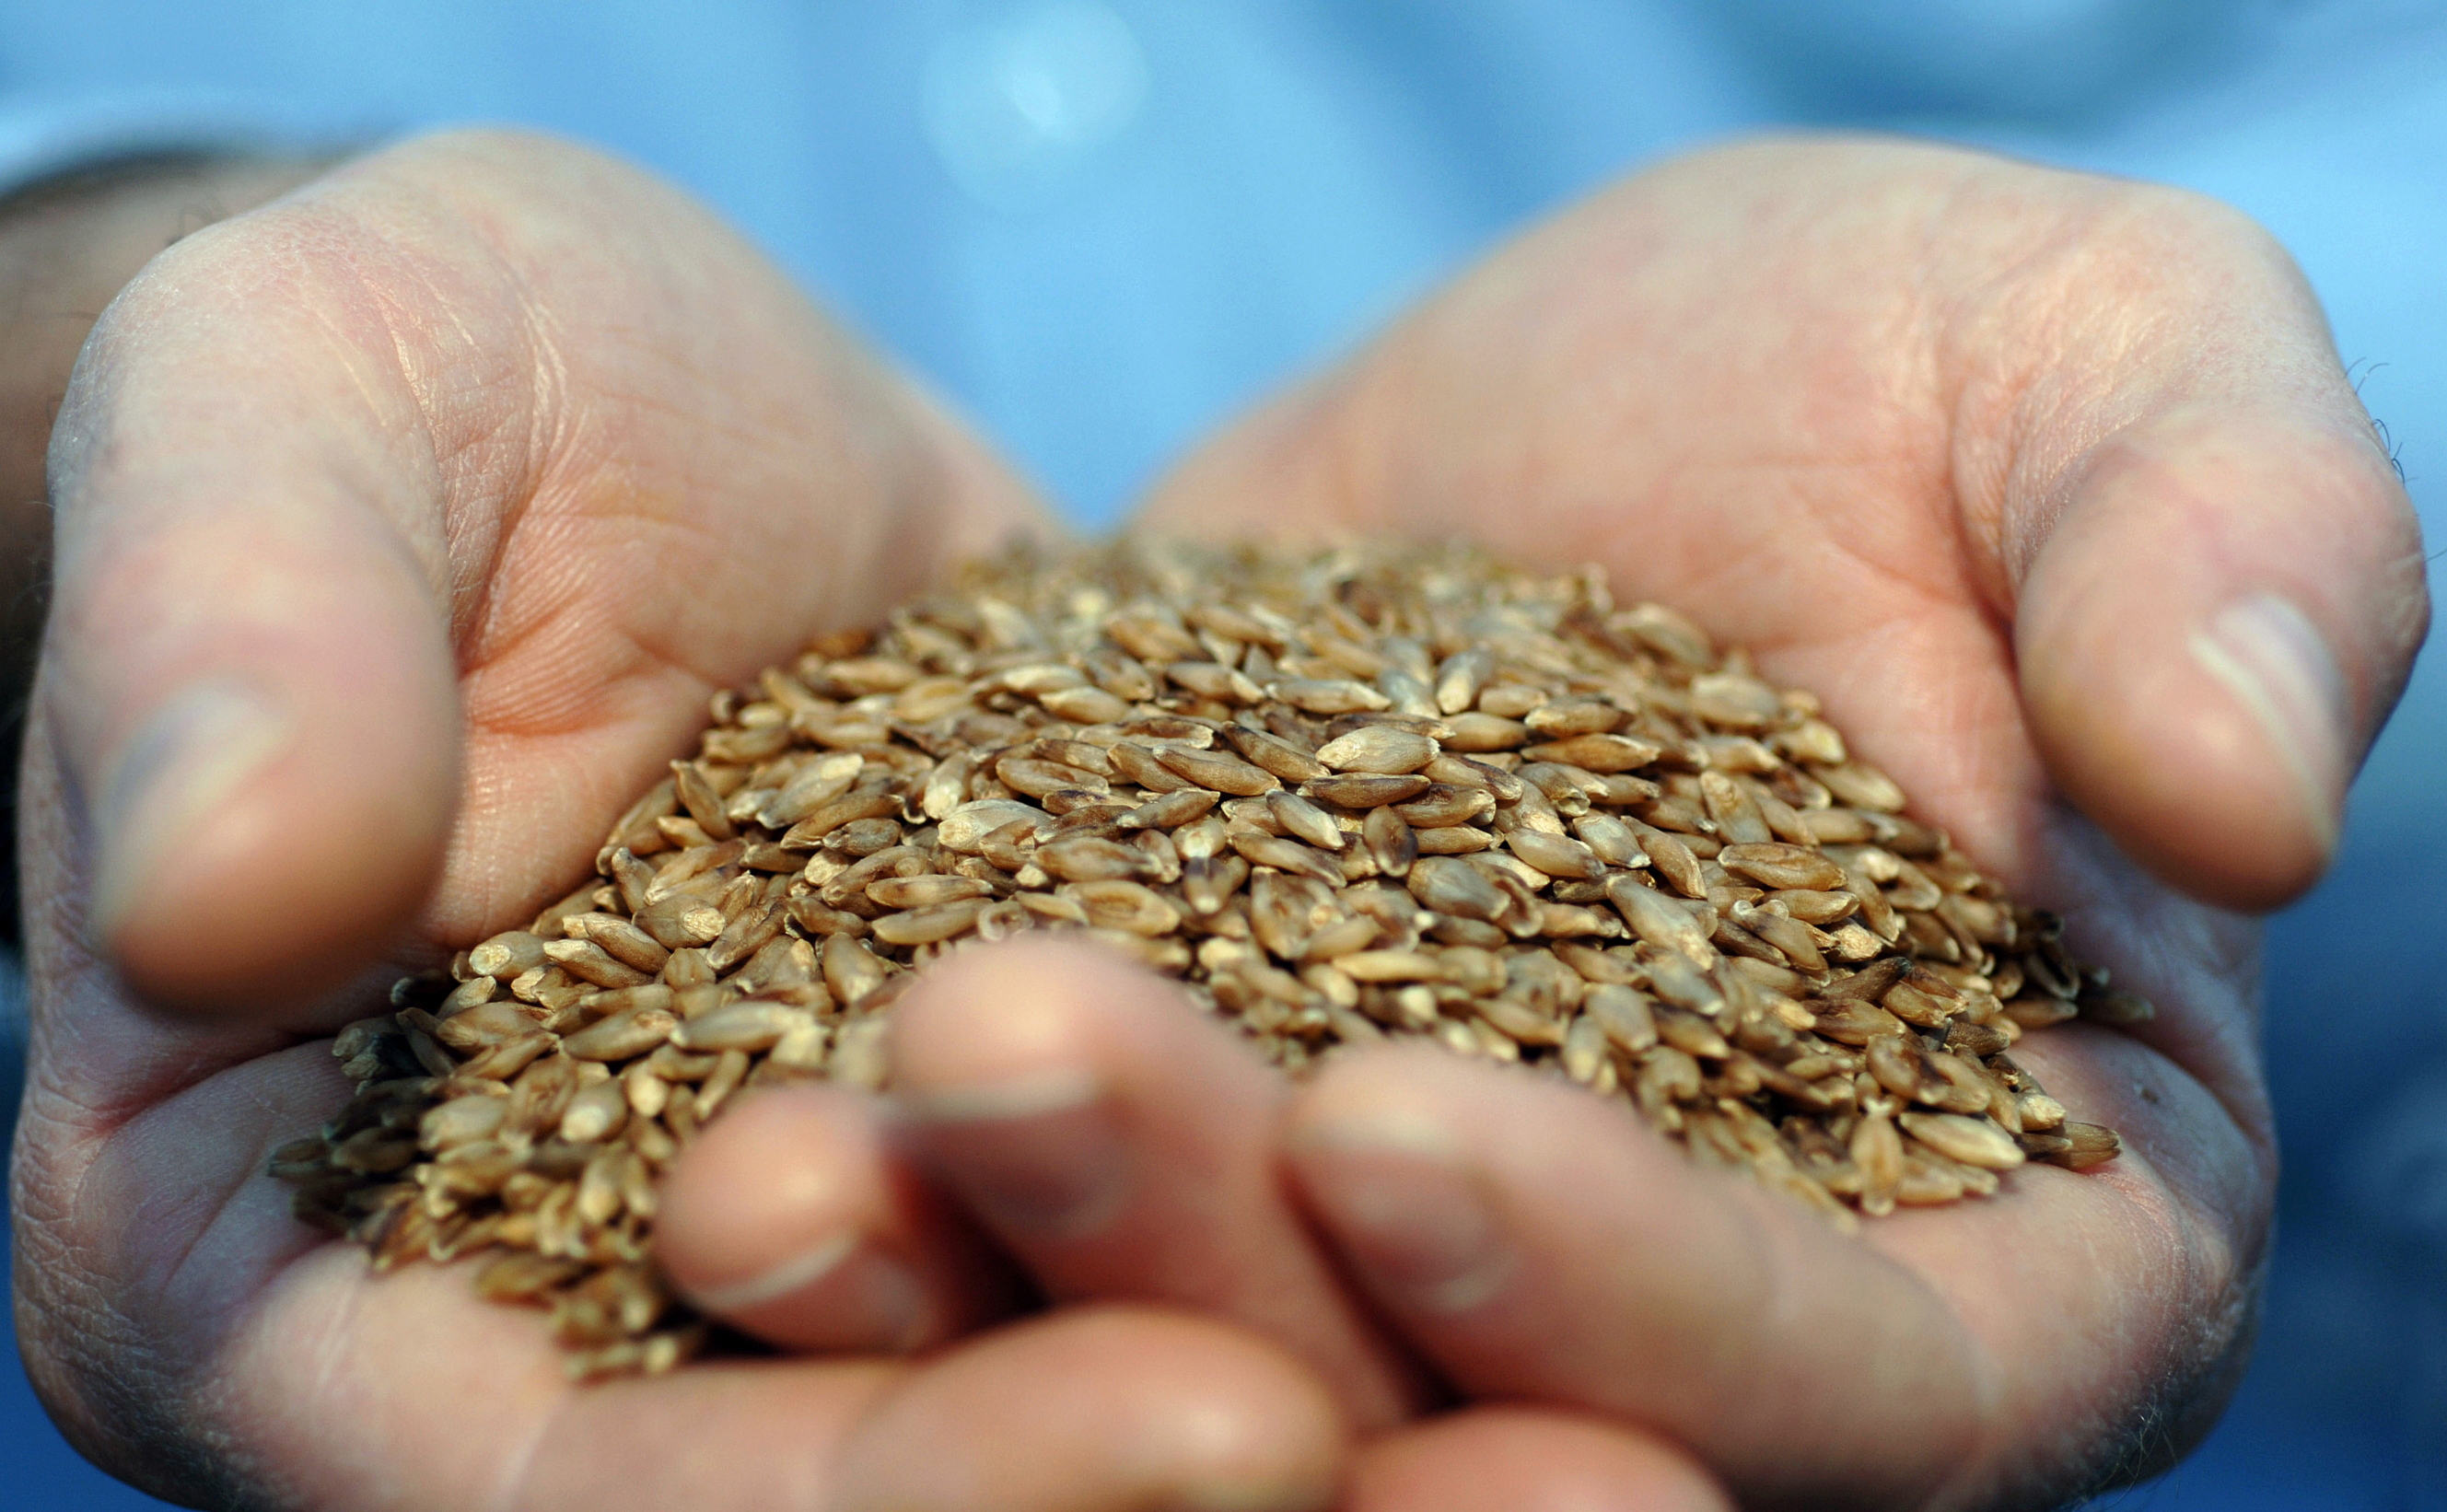 Cupped hands holding a handful BARLEYmax grains.